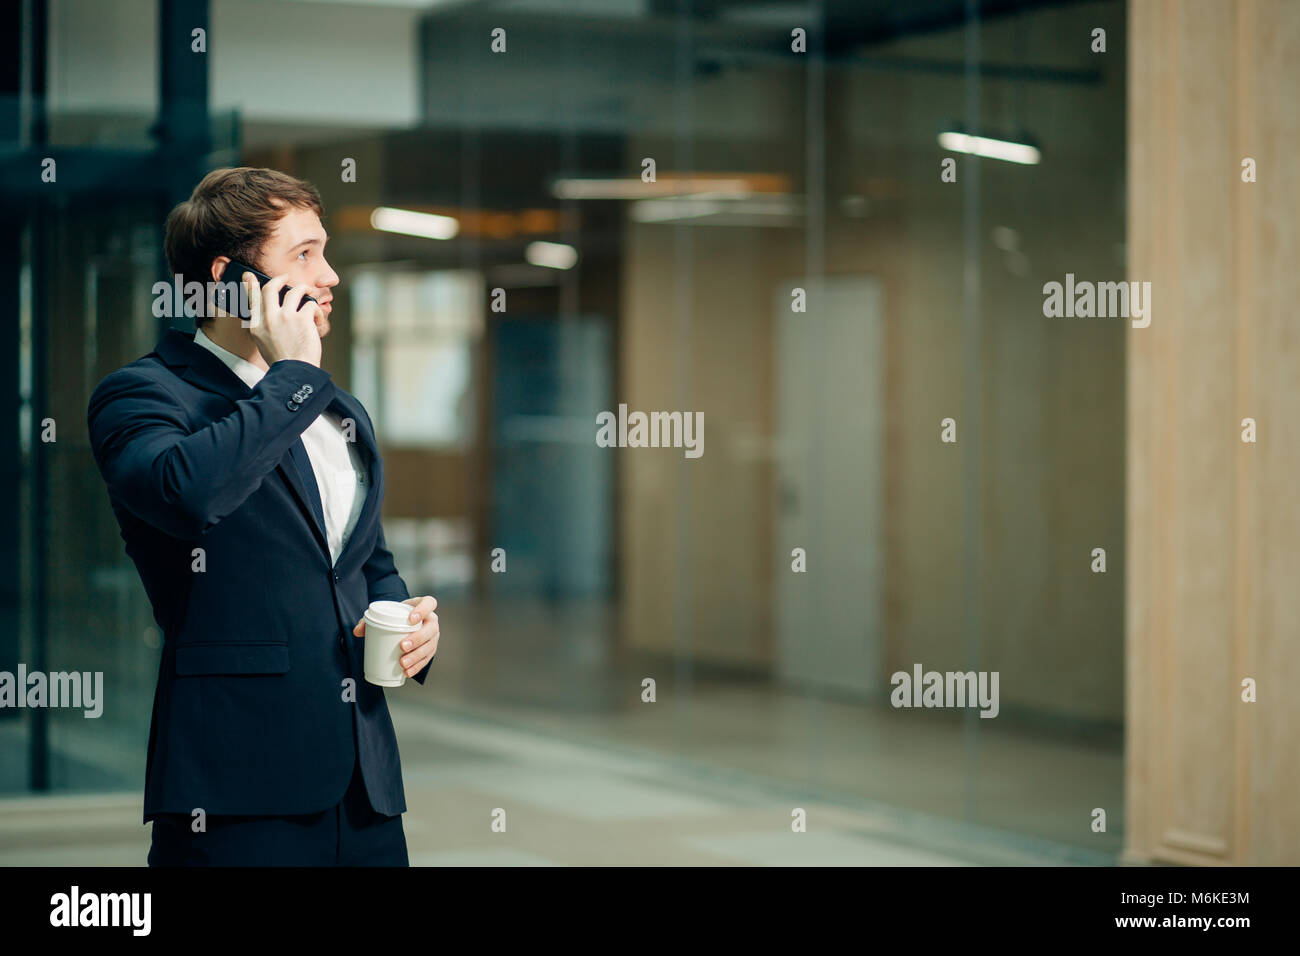 Businessman in black suit talking on phone and drinking takeaway coffee - Stock Image